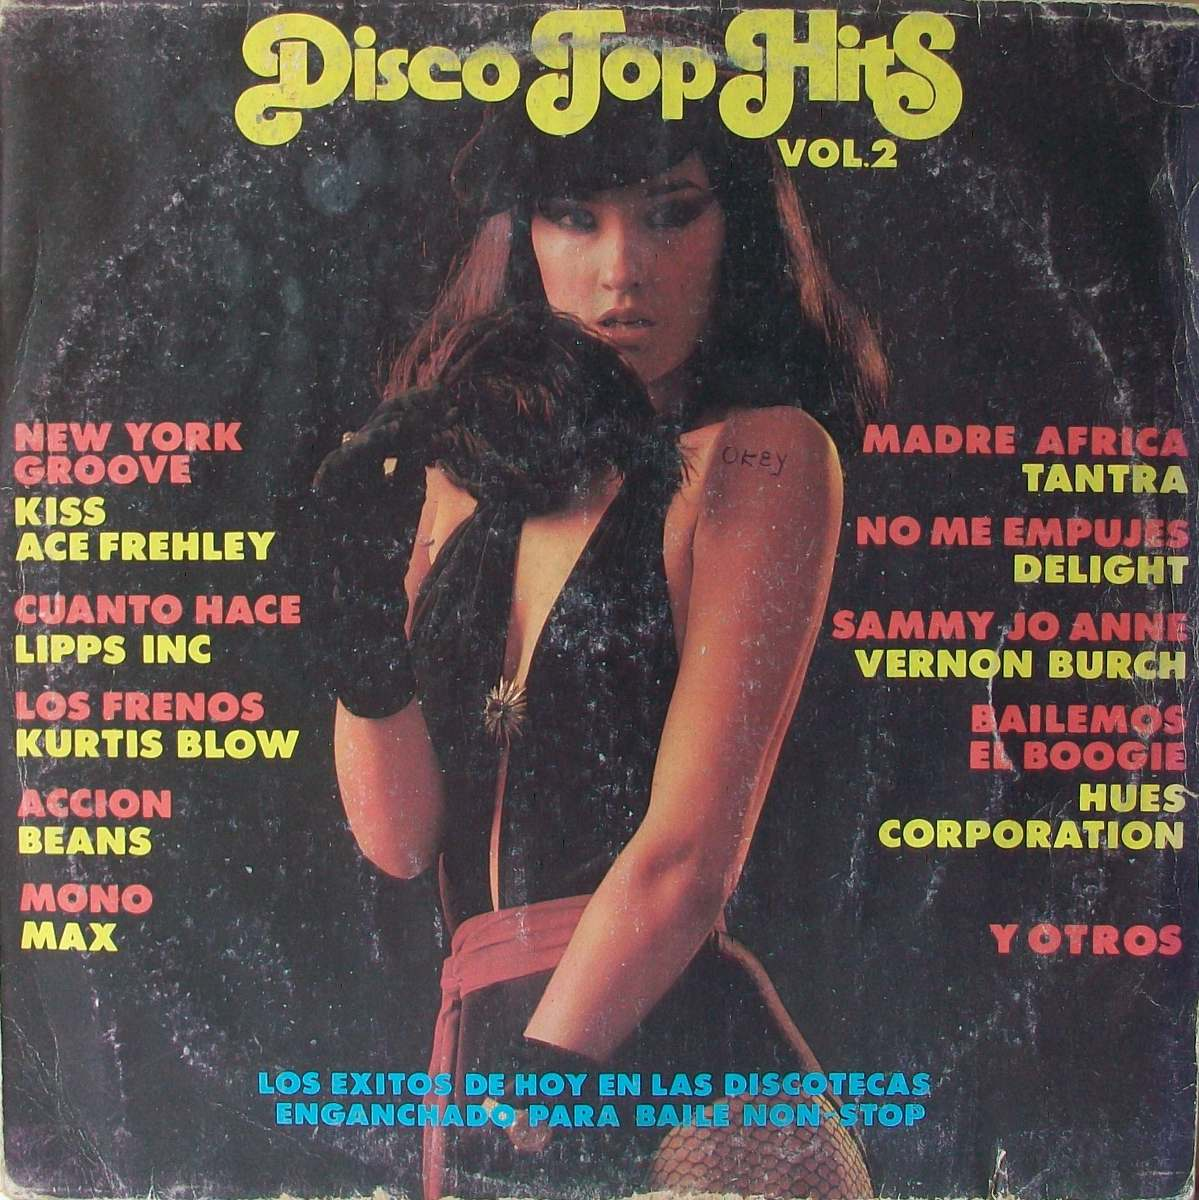 Disco Top Hits - volumen 2 - 1980